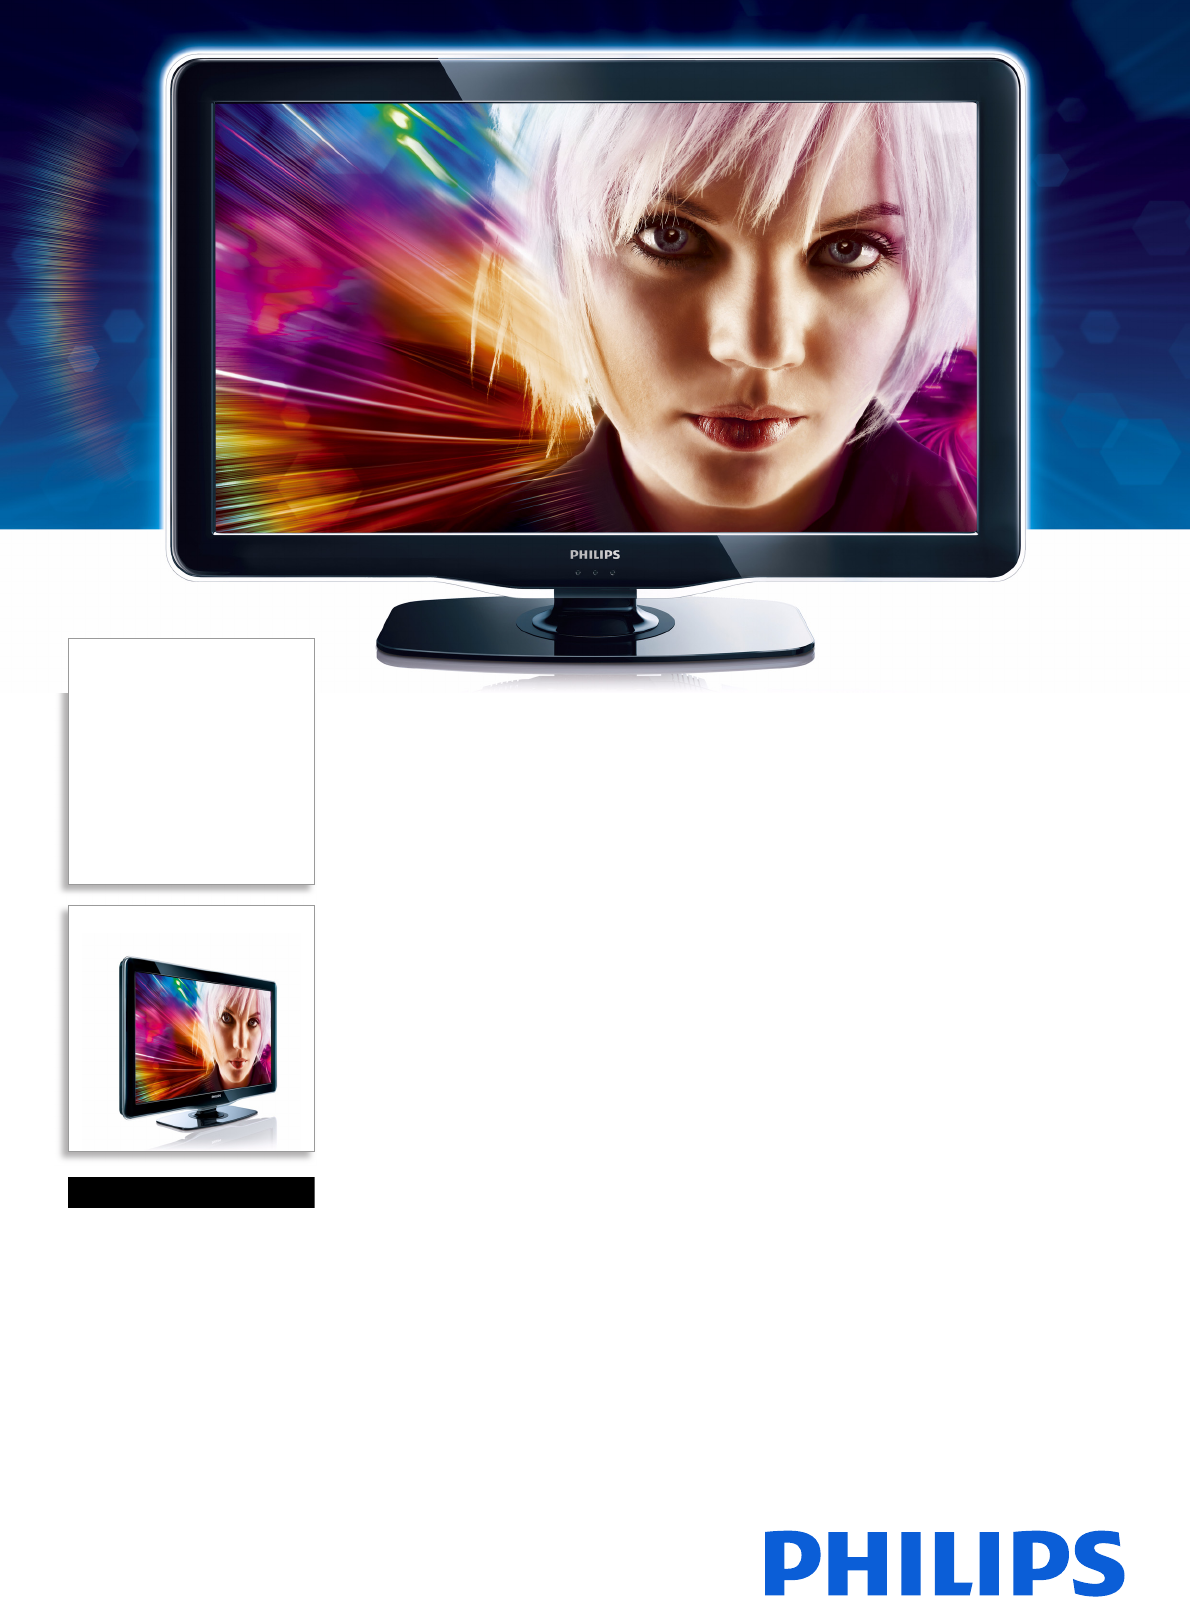 philips 32pfl5605 98 led tv with pixel plus hd user manual leaflet rh usermanual wiki